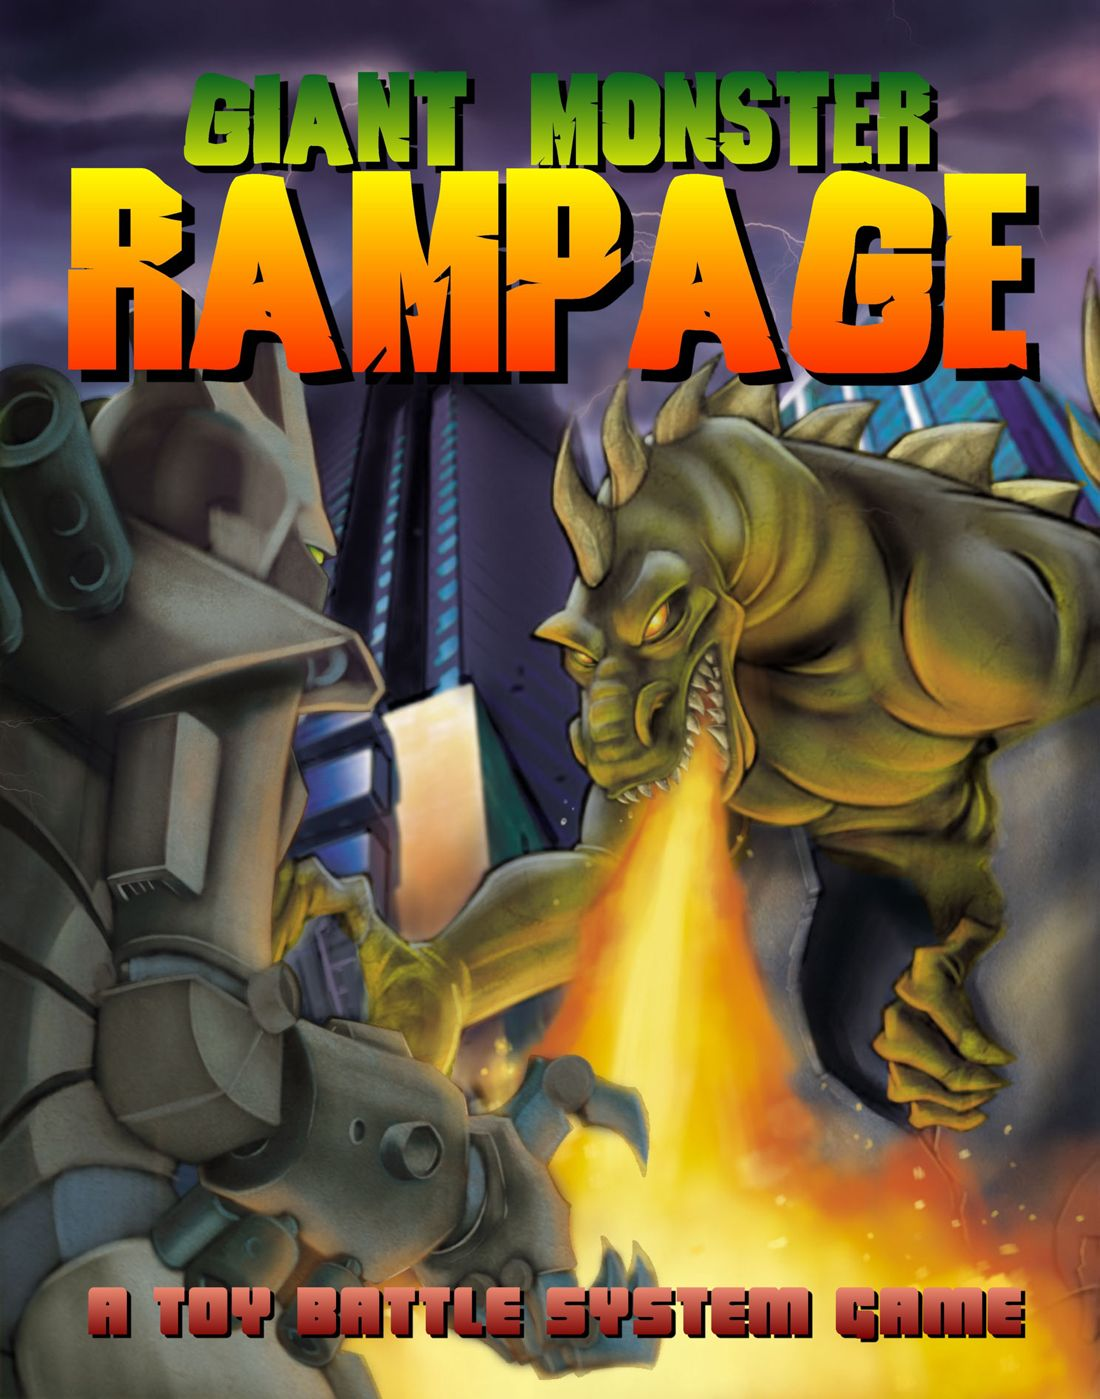 Giant Monster Rampage Game Monster Rampage Giant Monsters